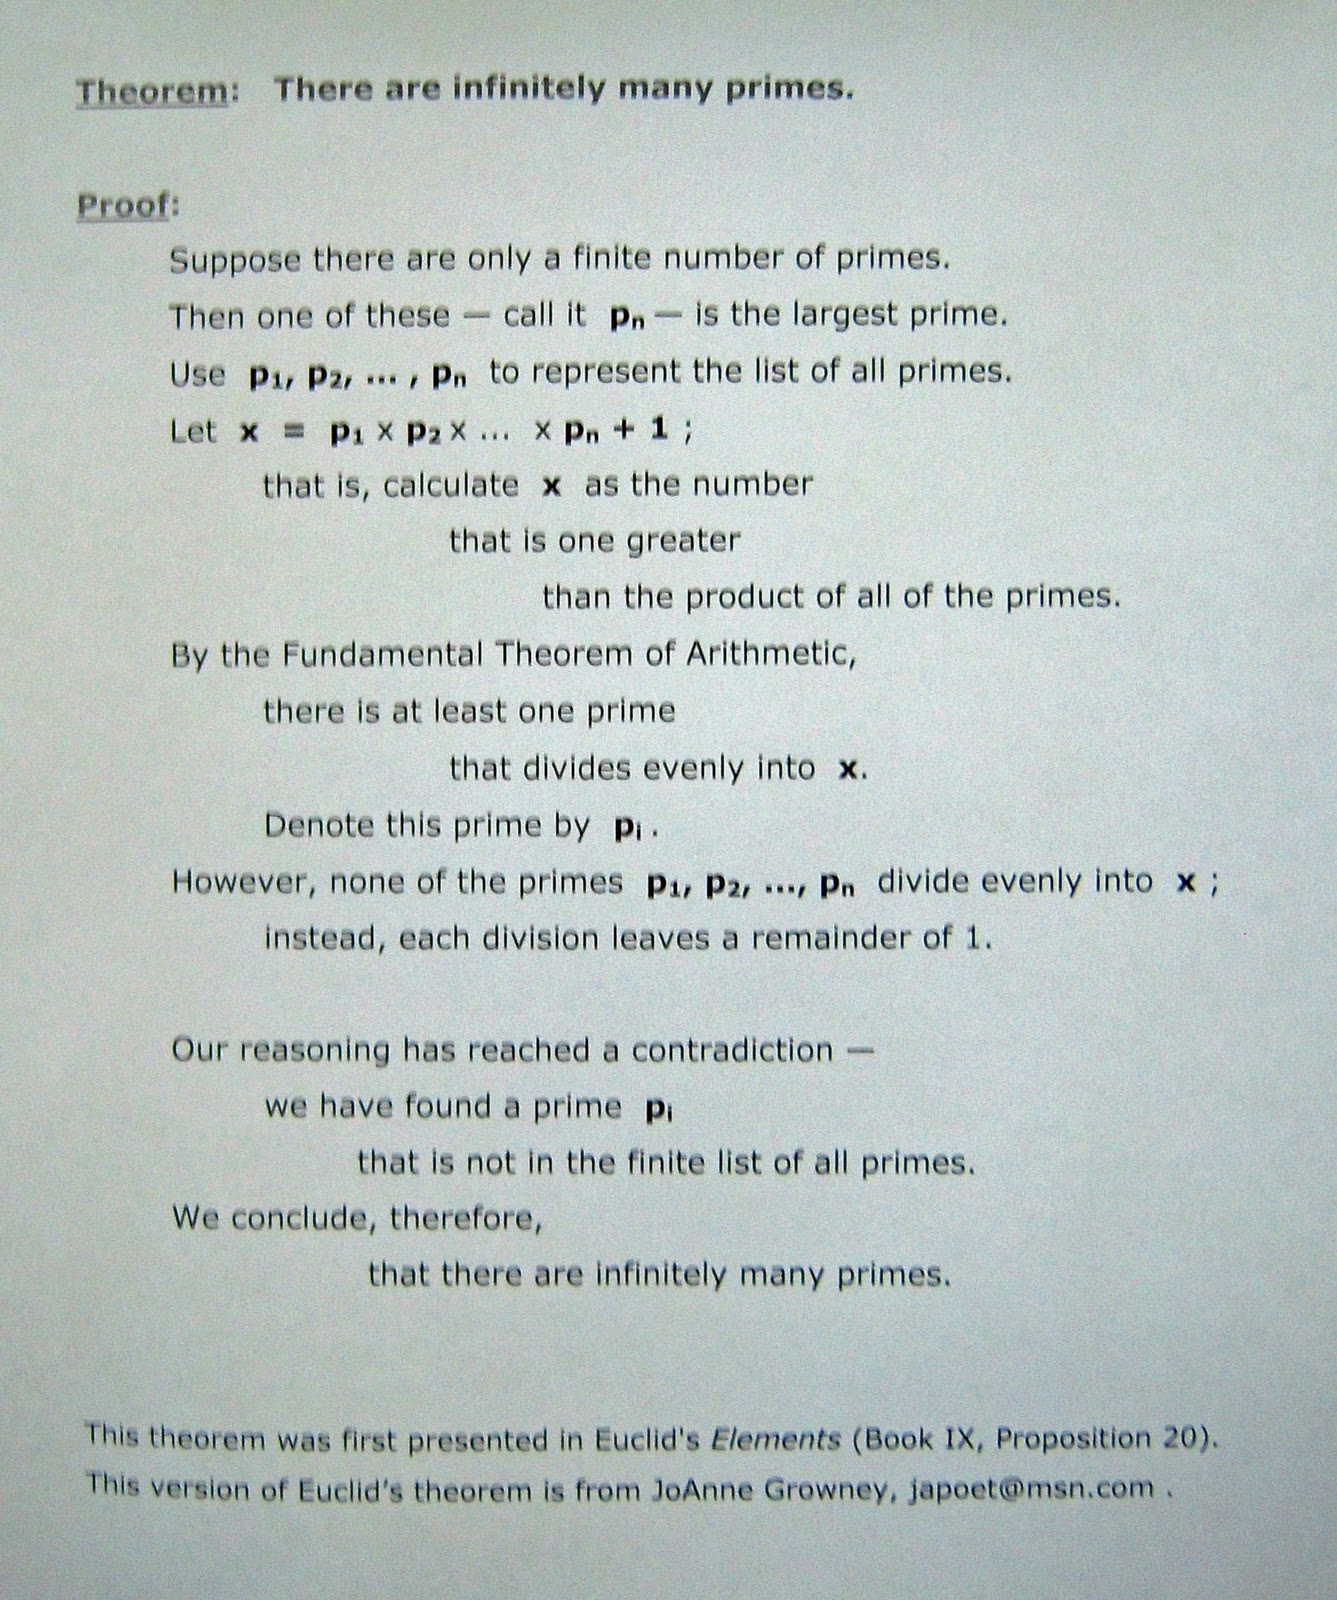 Intersections -- Poetry with Mathematics: Theorem-proof / Cut-up / poems